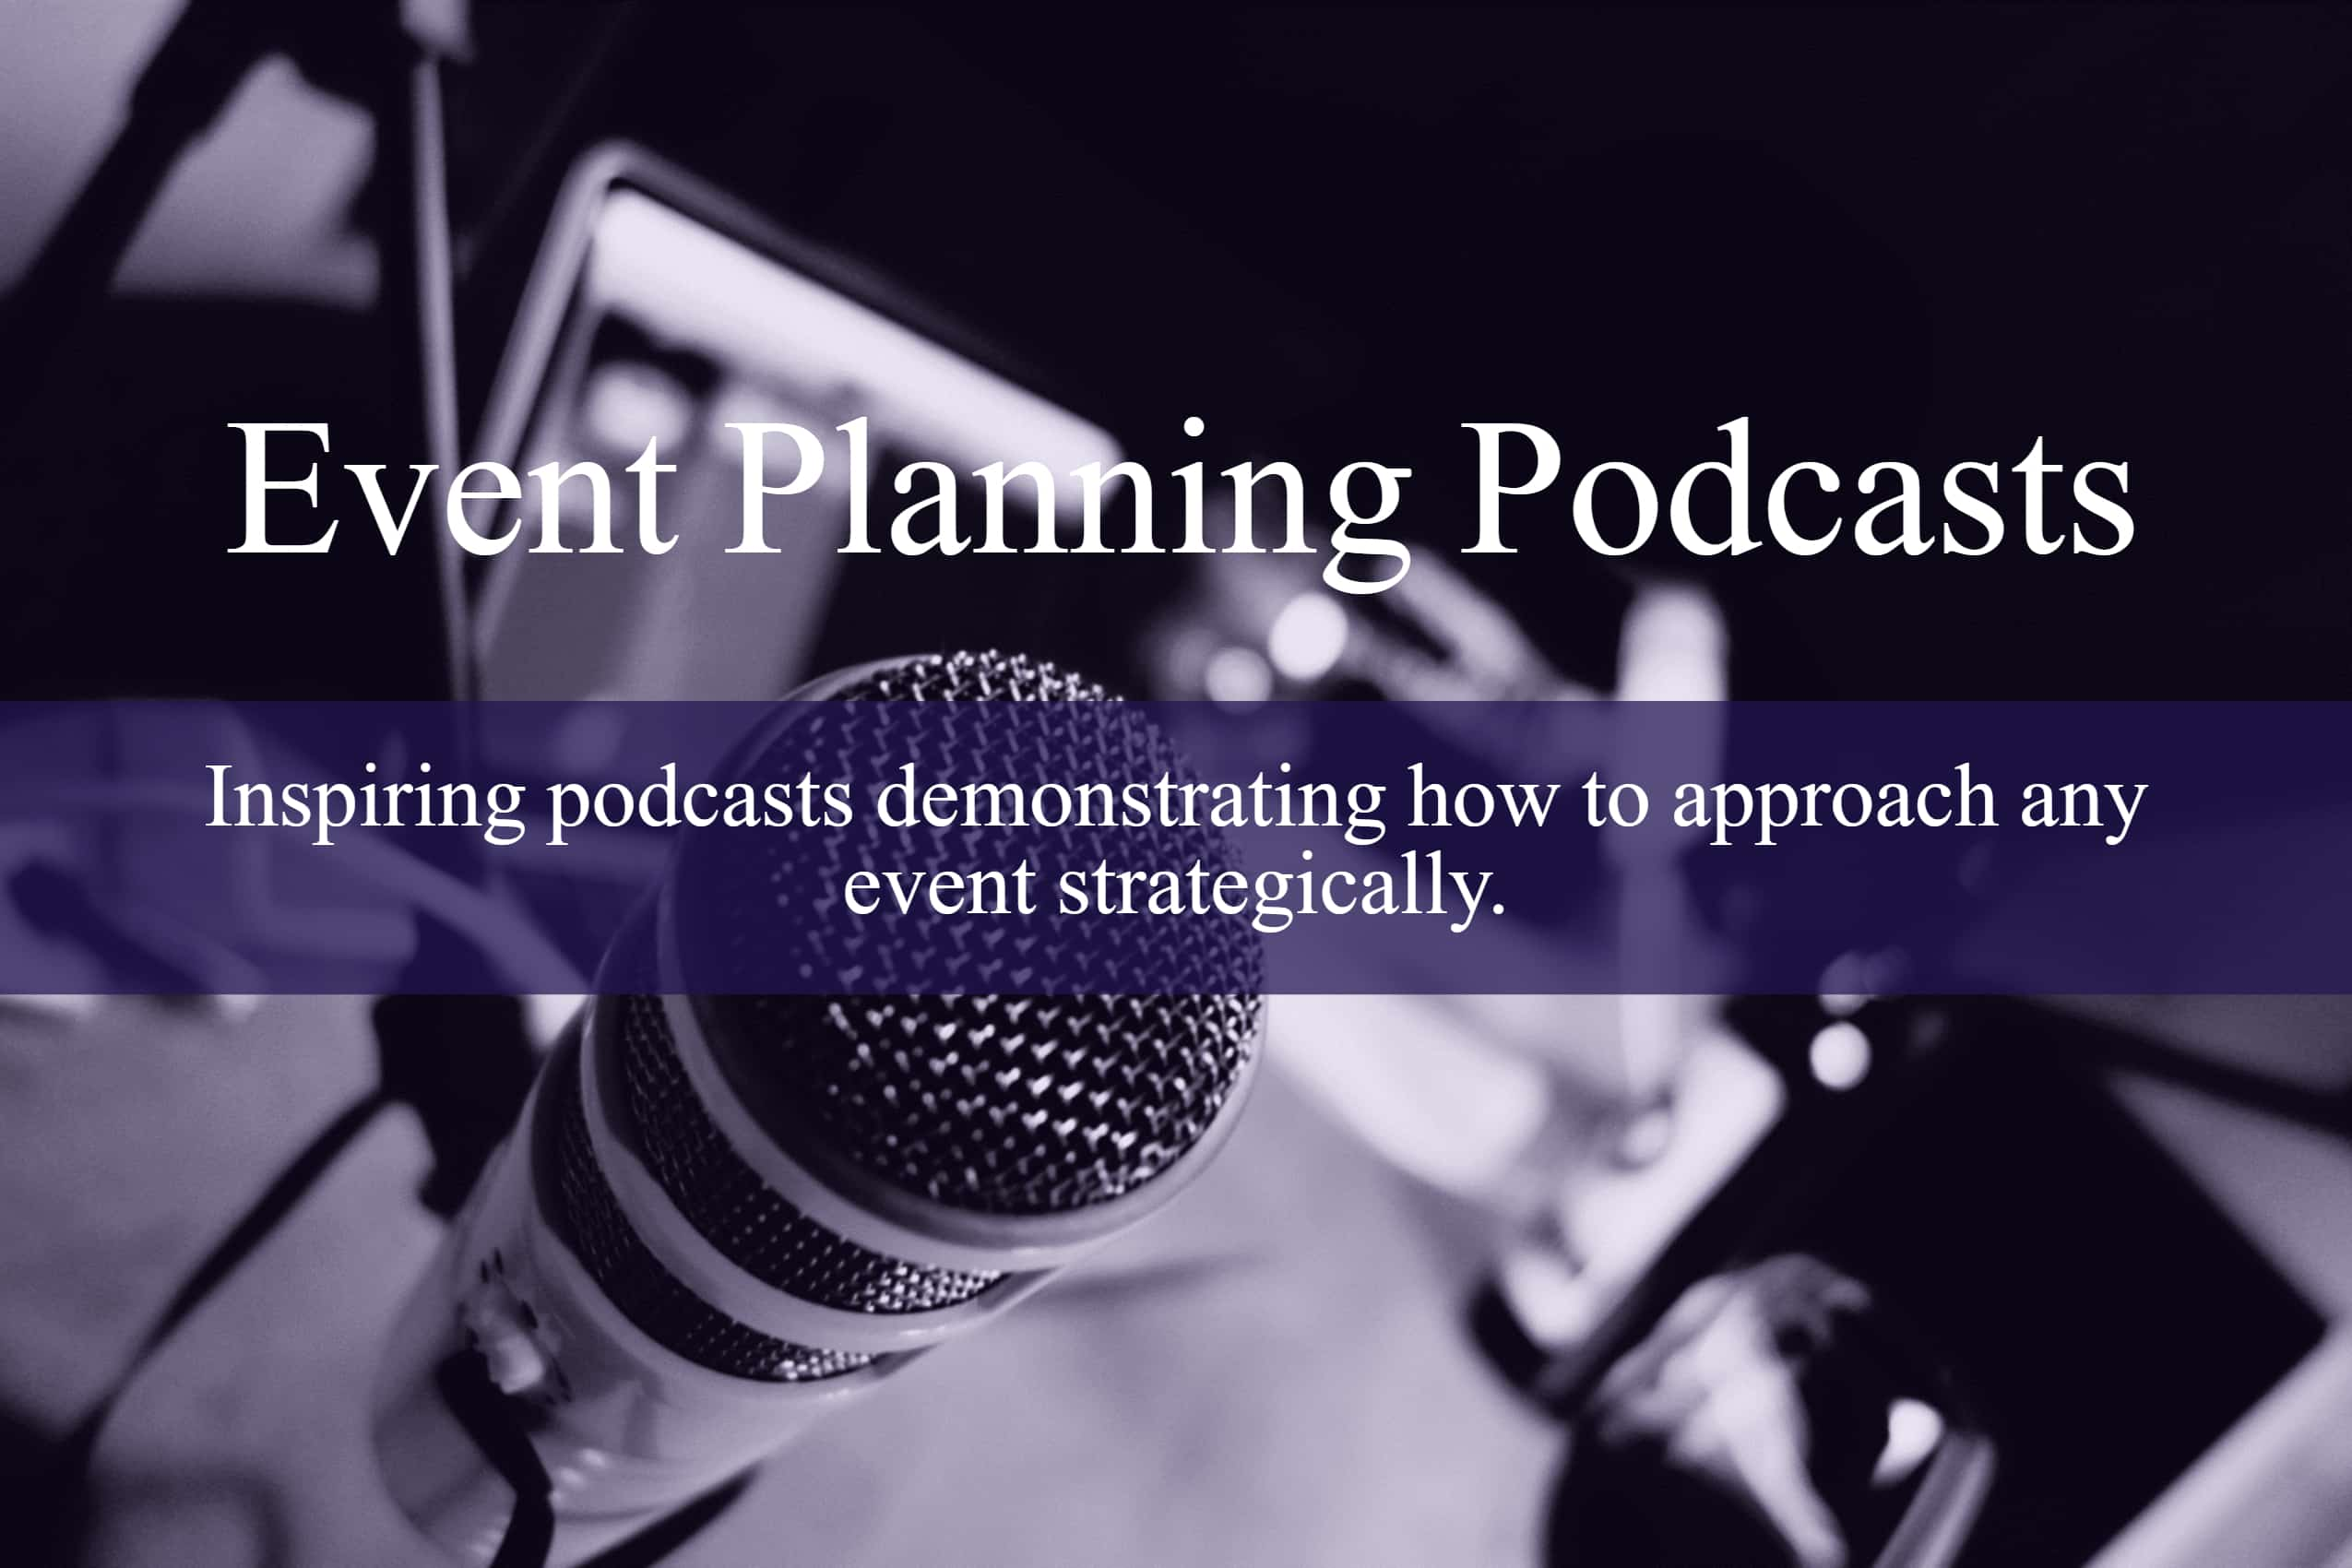 Event Planning Podcasts